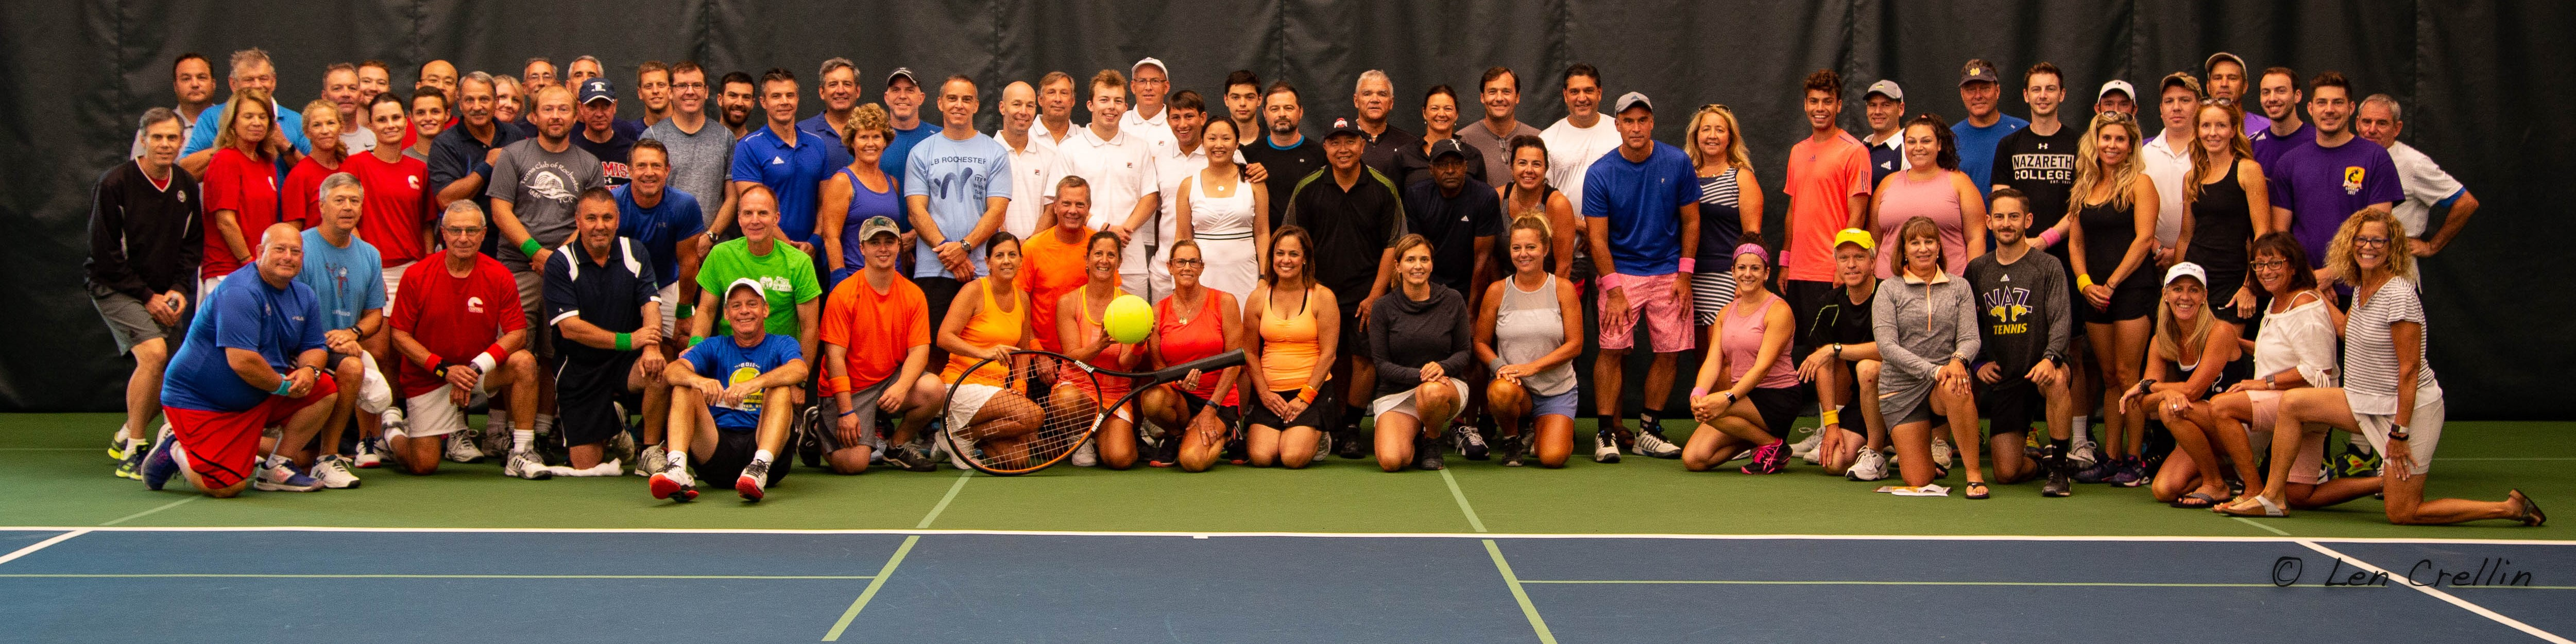 2020 Al Sigl Sports Classic Tennis Benefit